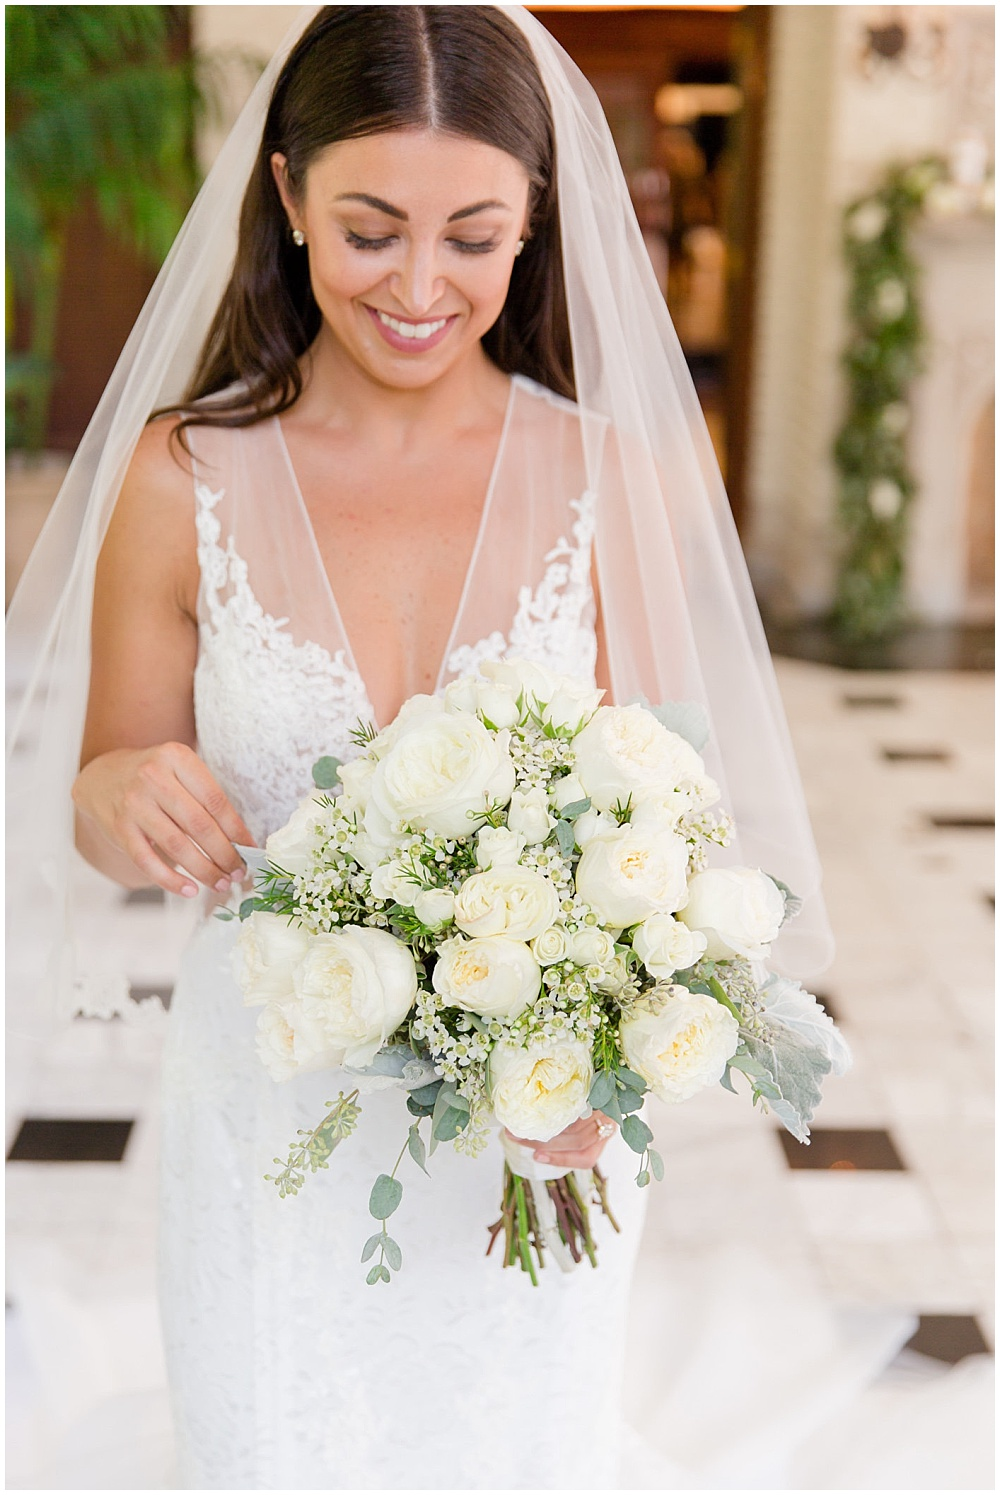 bridal portraits; white lace wedding dress; white wedding; white bridal bouquet | Outdoor Terrace Wedding, Laurel Hall - Danielle Harris Photography; Jessica Dum Wedding Coordination